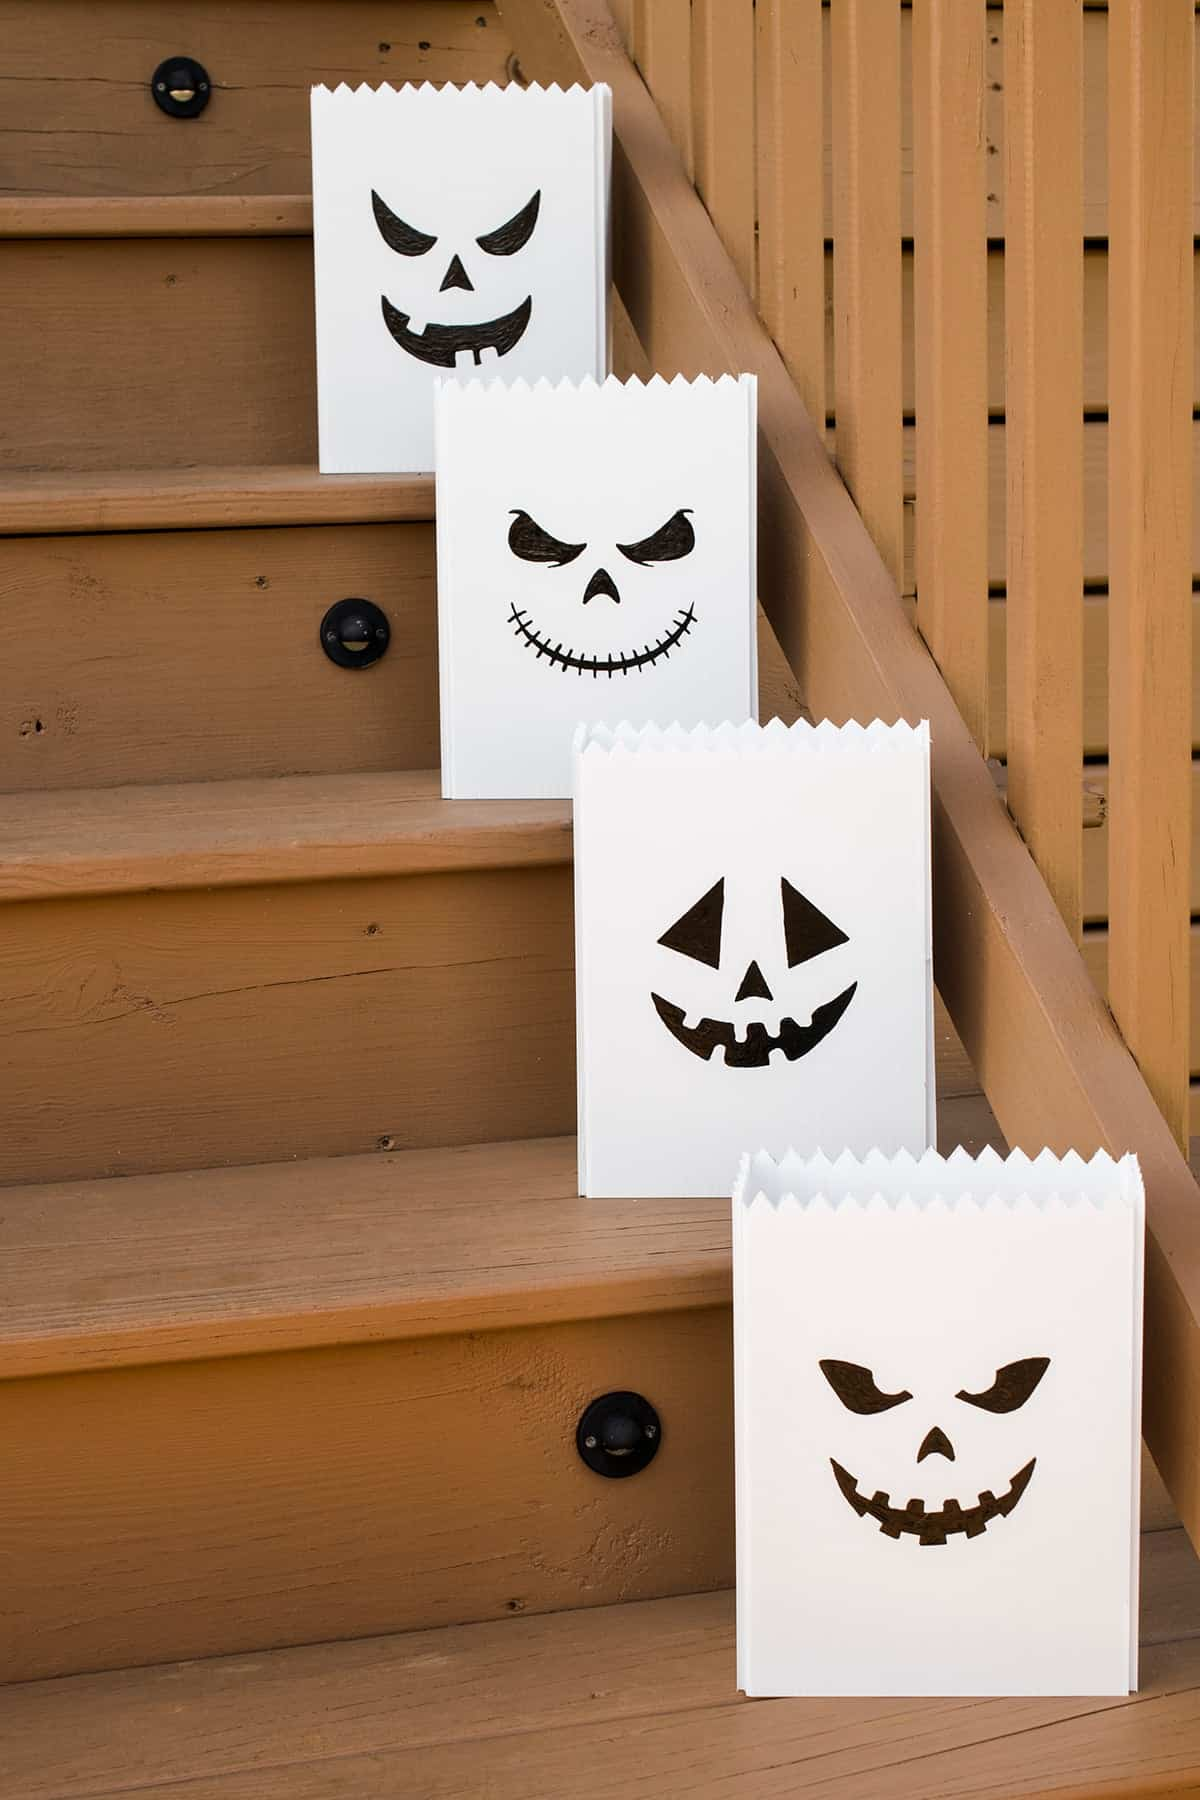 White outdoor pumpkin luminaries with black jack-o-lantern faces on wooden deck steps in daylight.